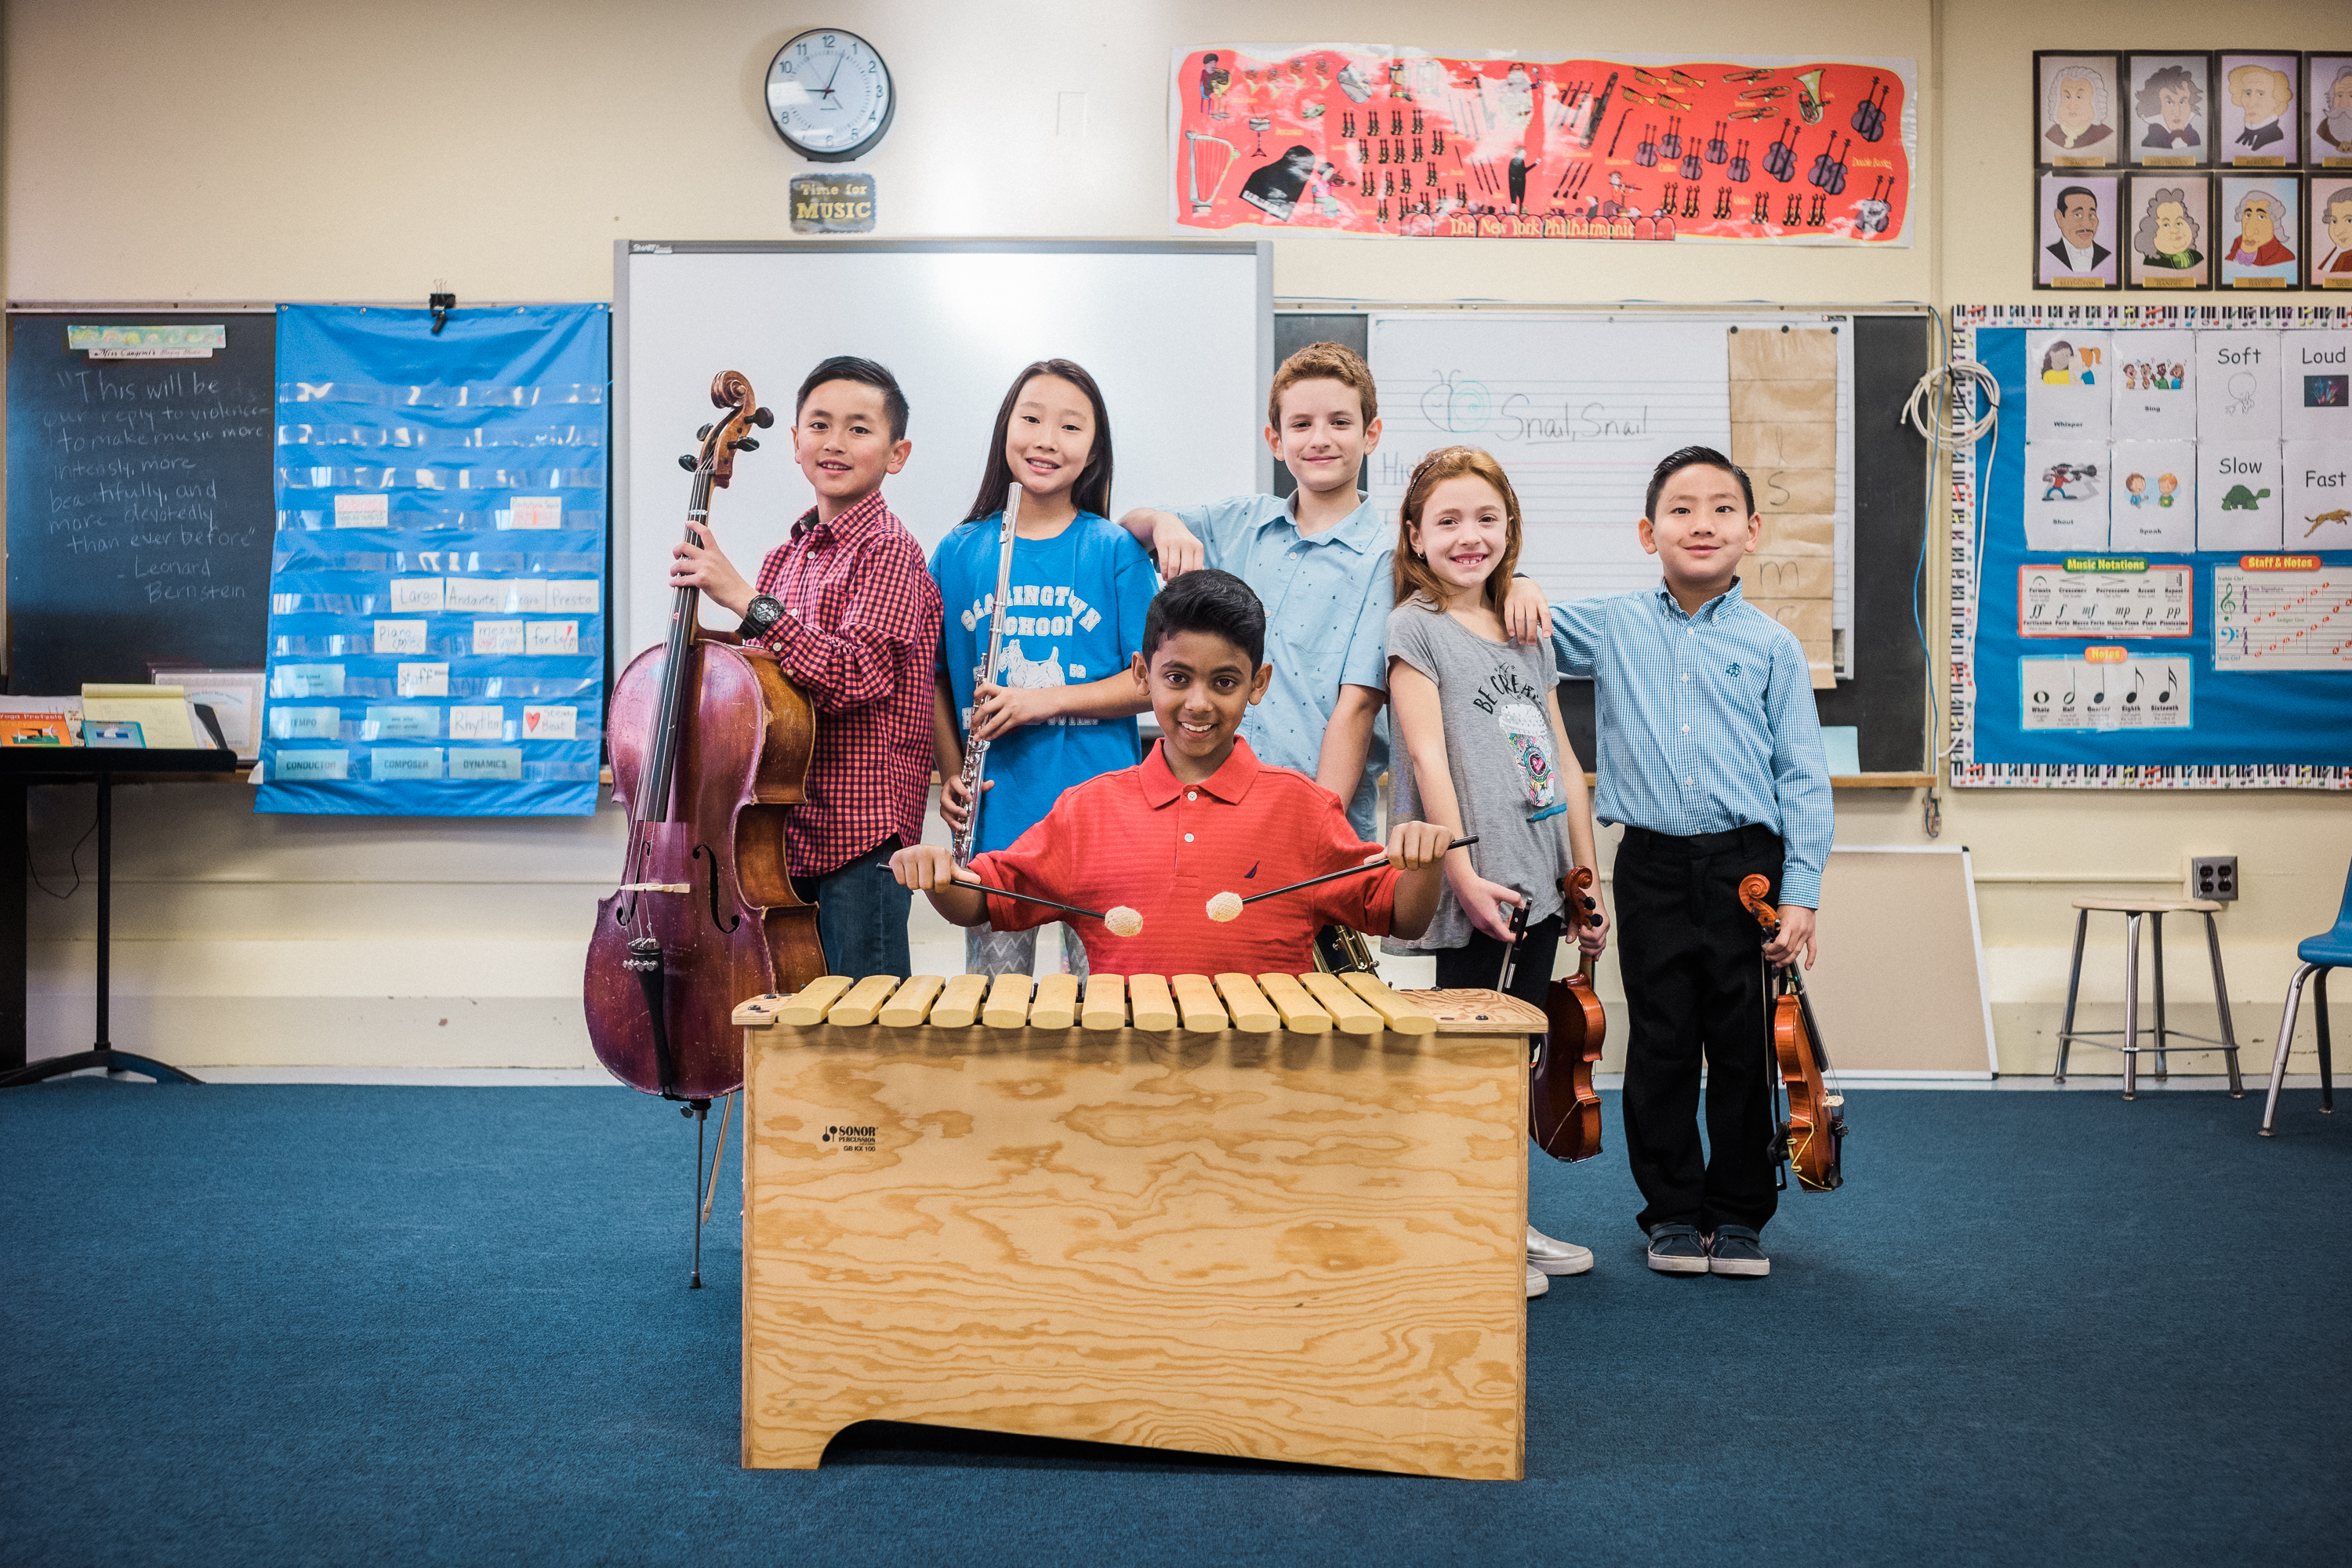 Kids in a music classroom